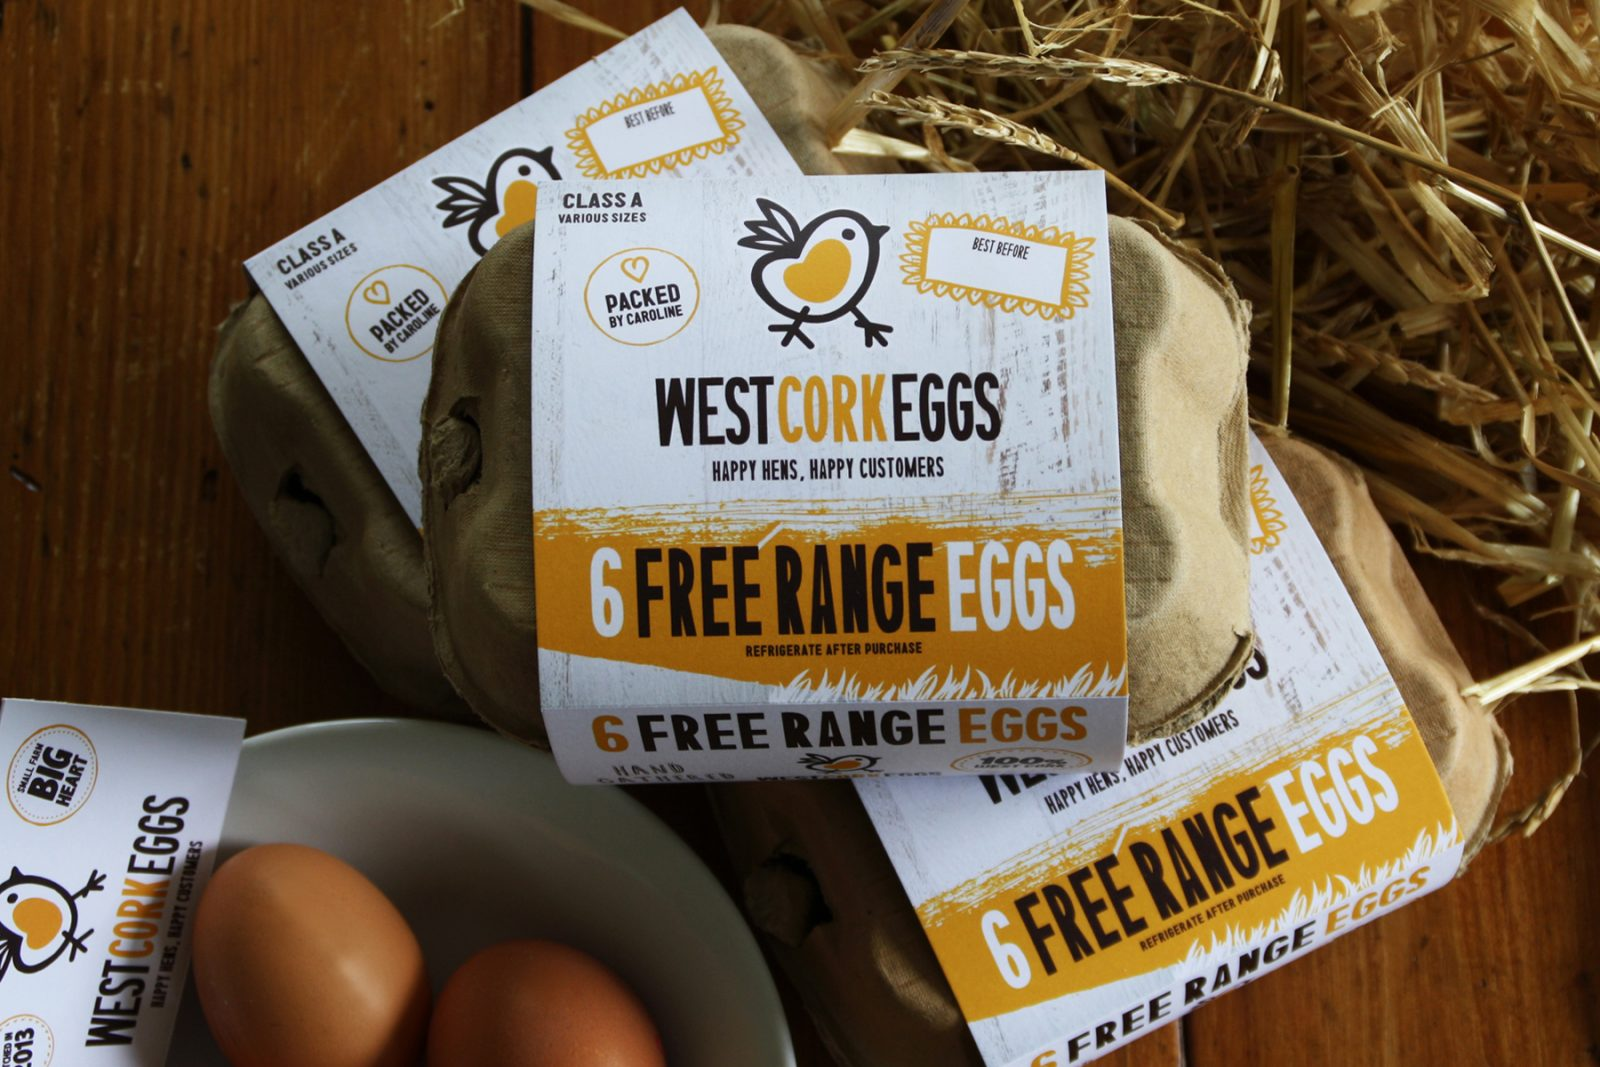 west cork eggs